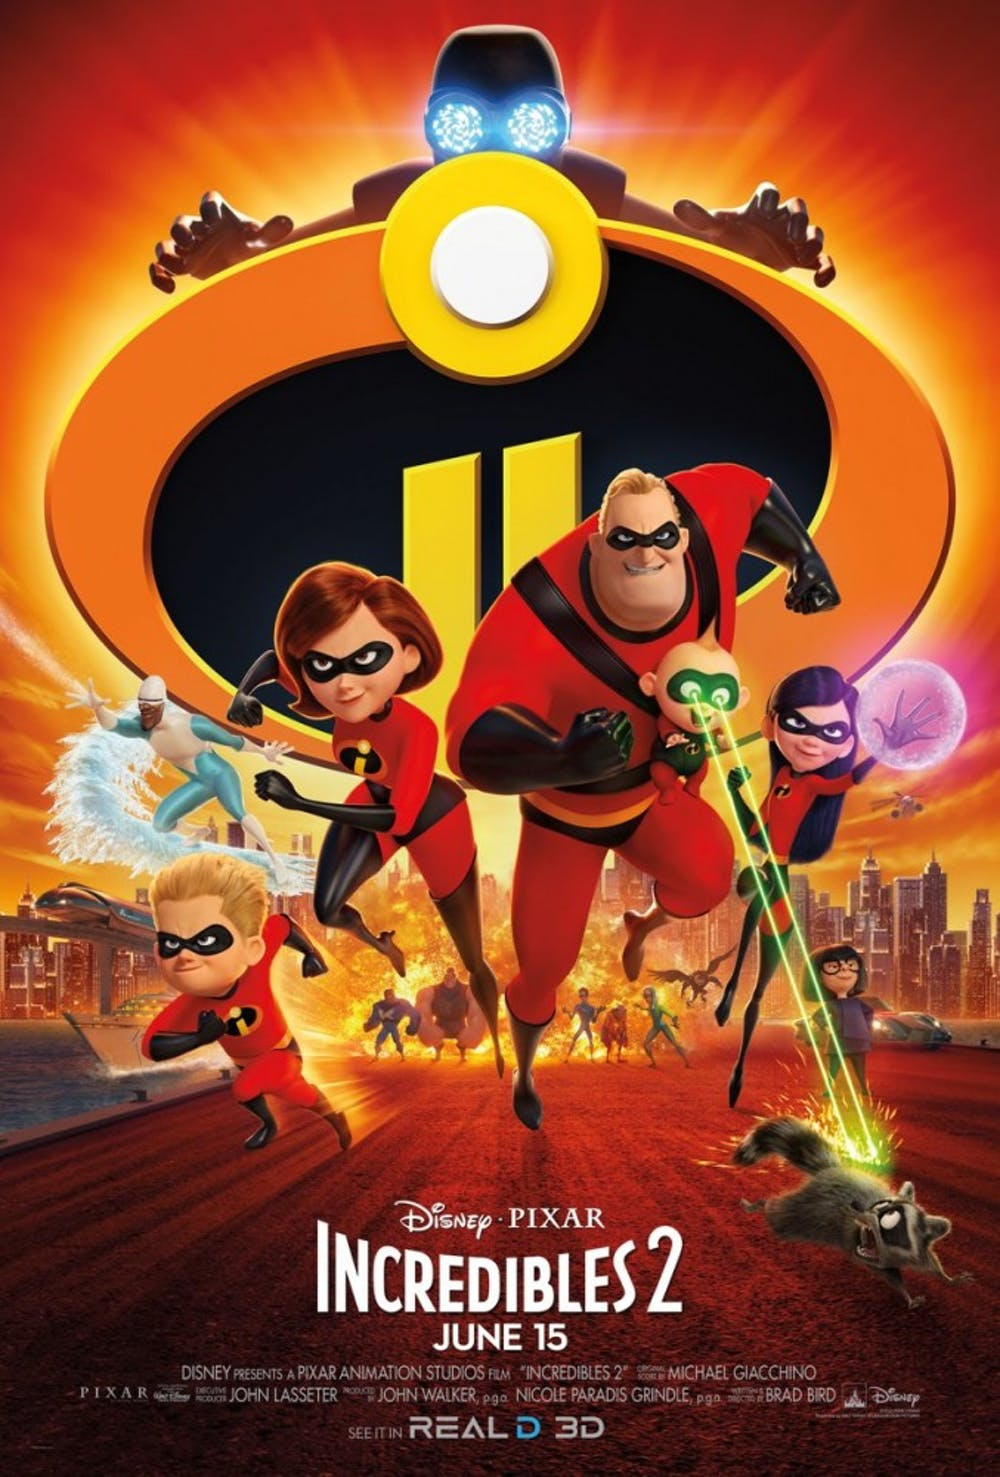 Film Review: 'Incredibles 2' is a superhero movie worth seeing